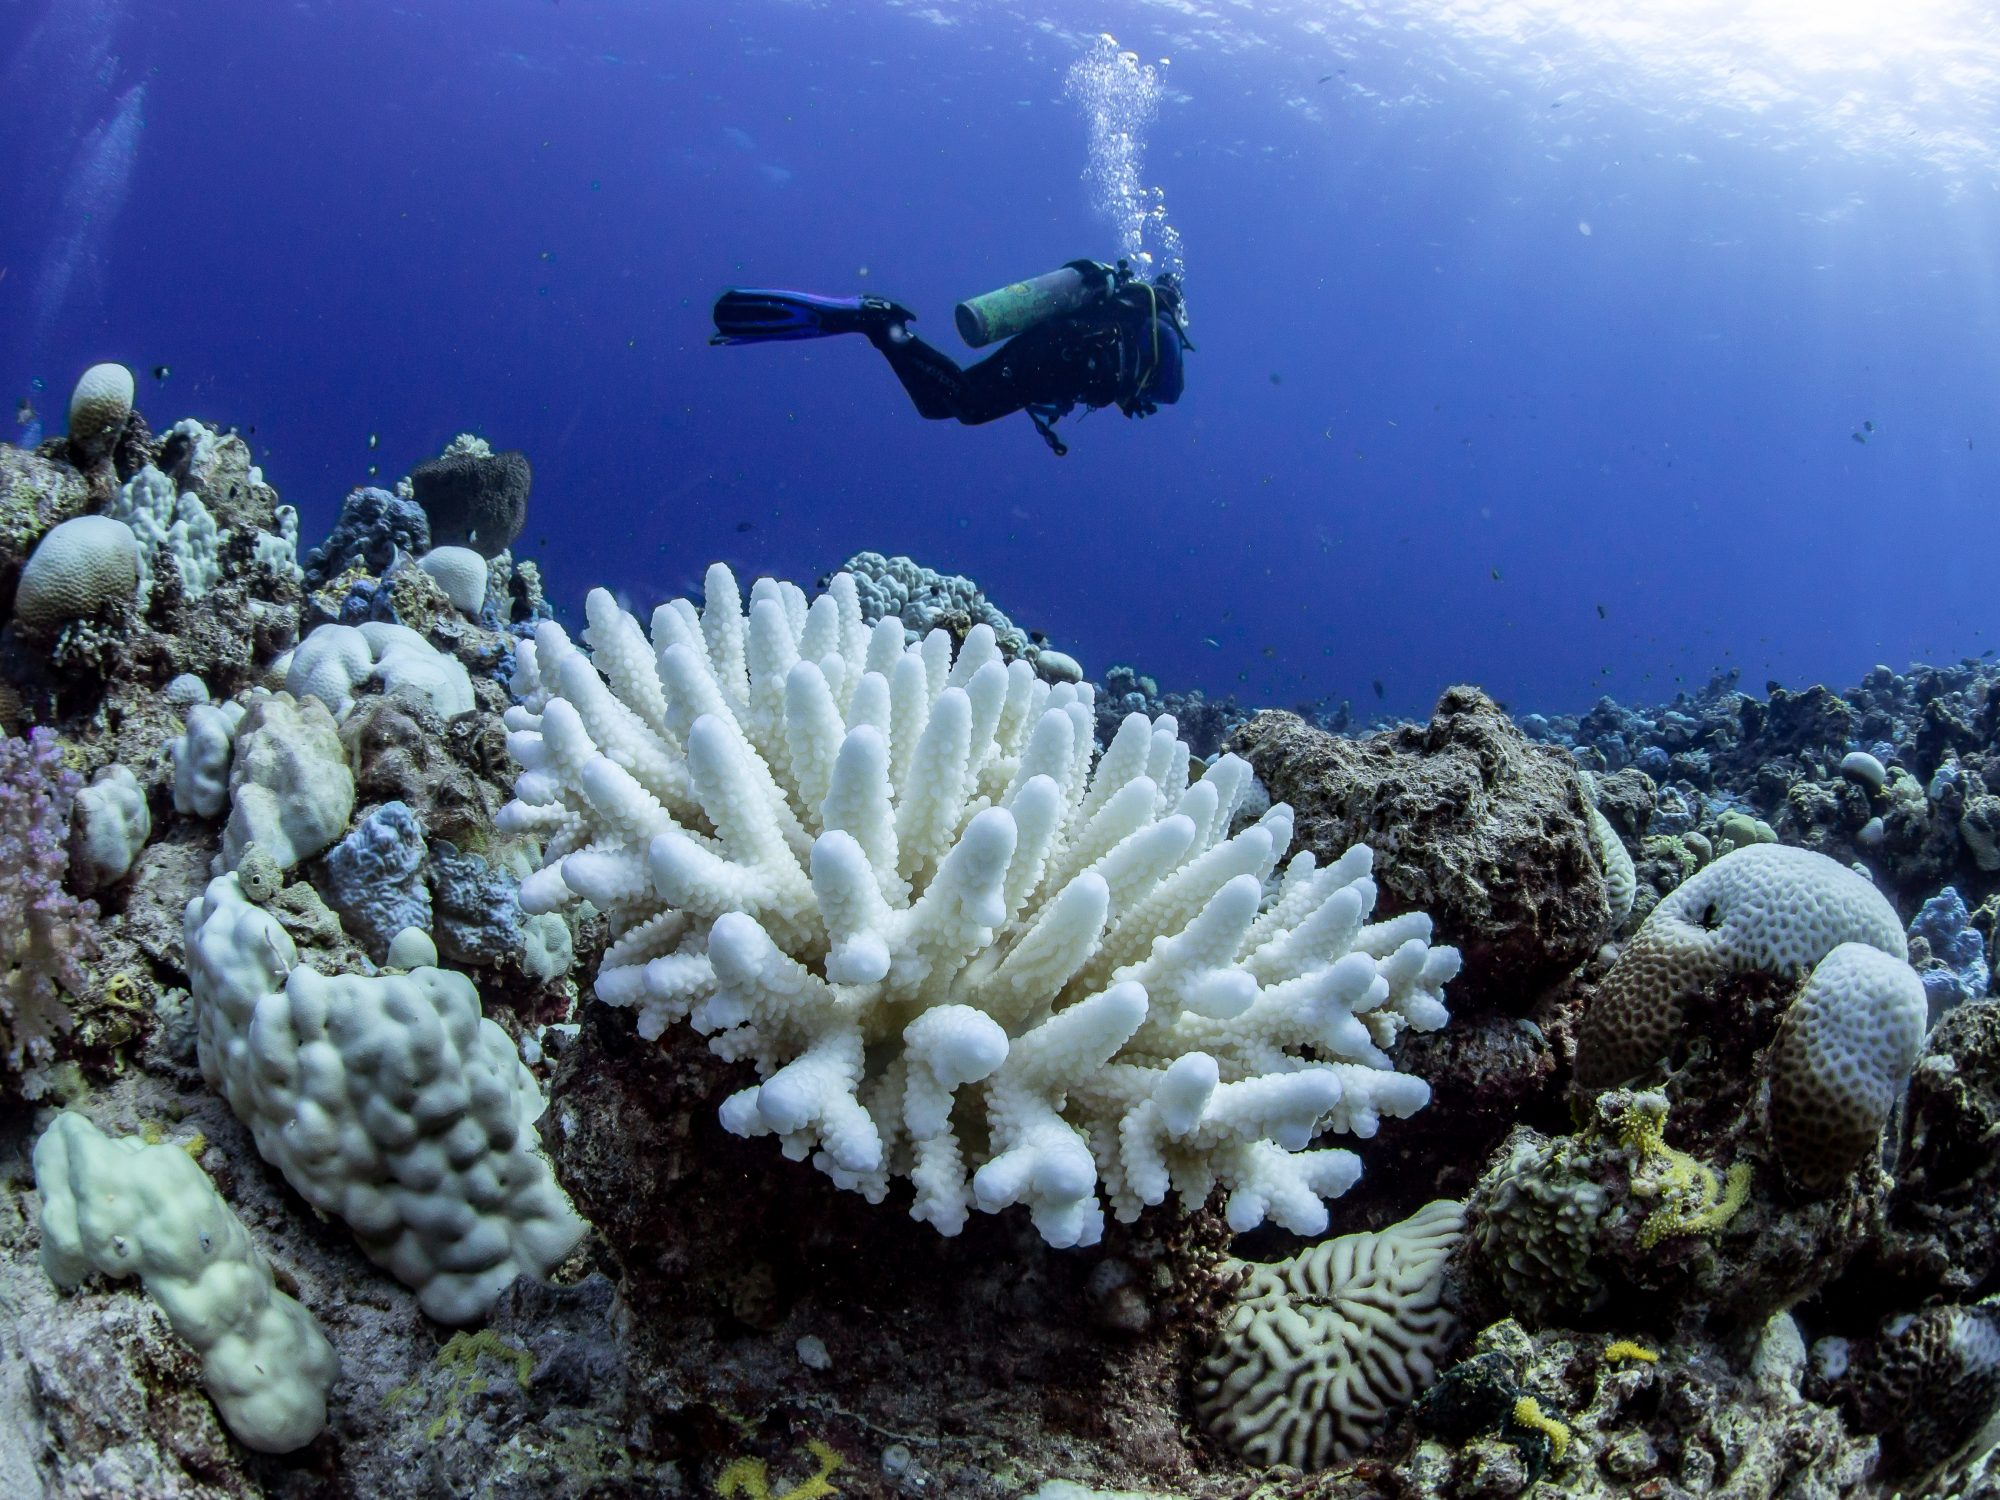 Bleached corals in the Red Sea.